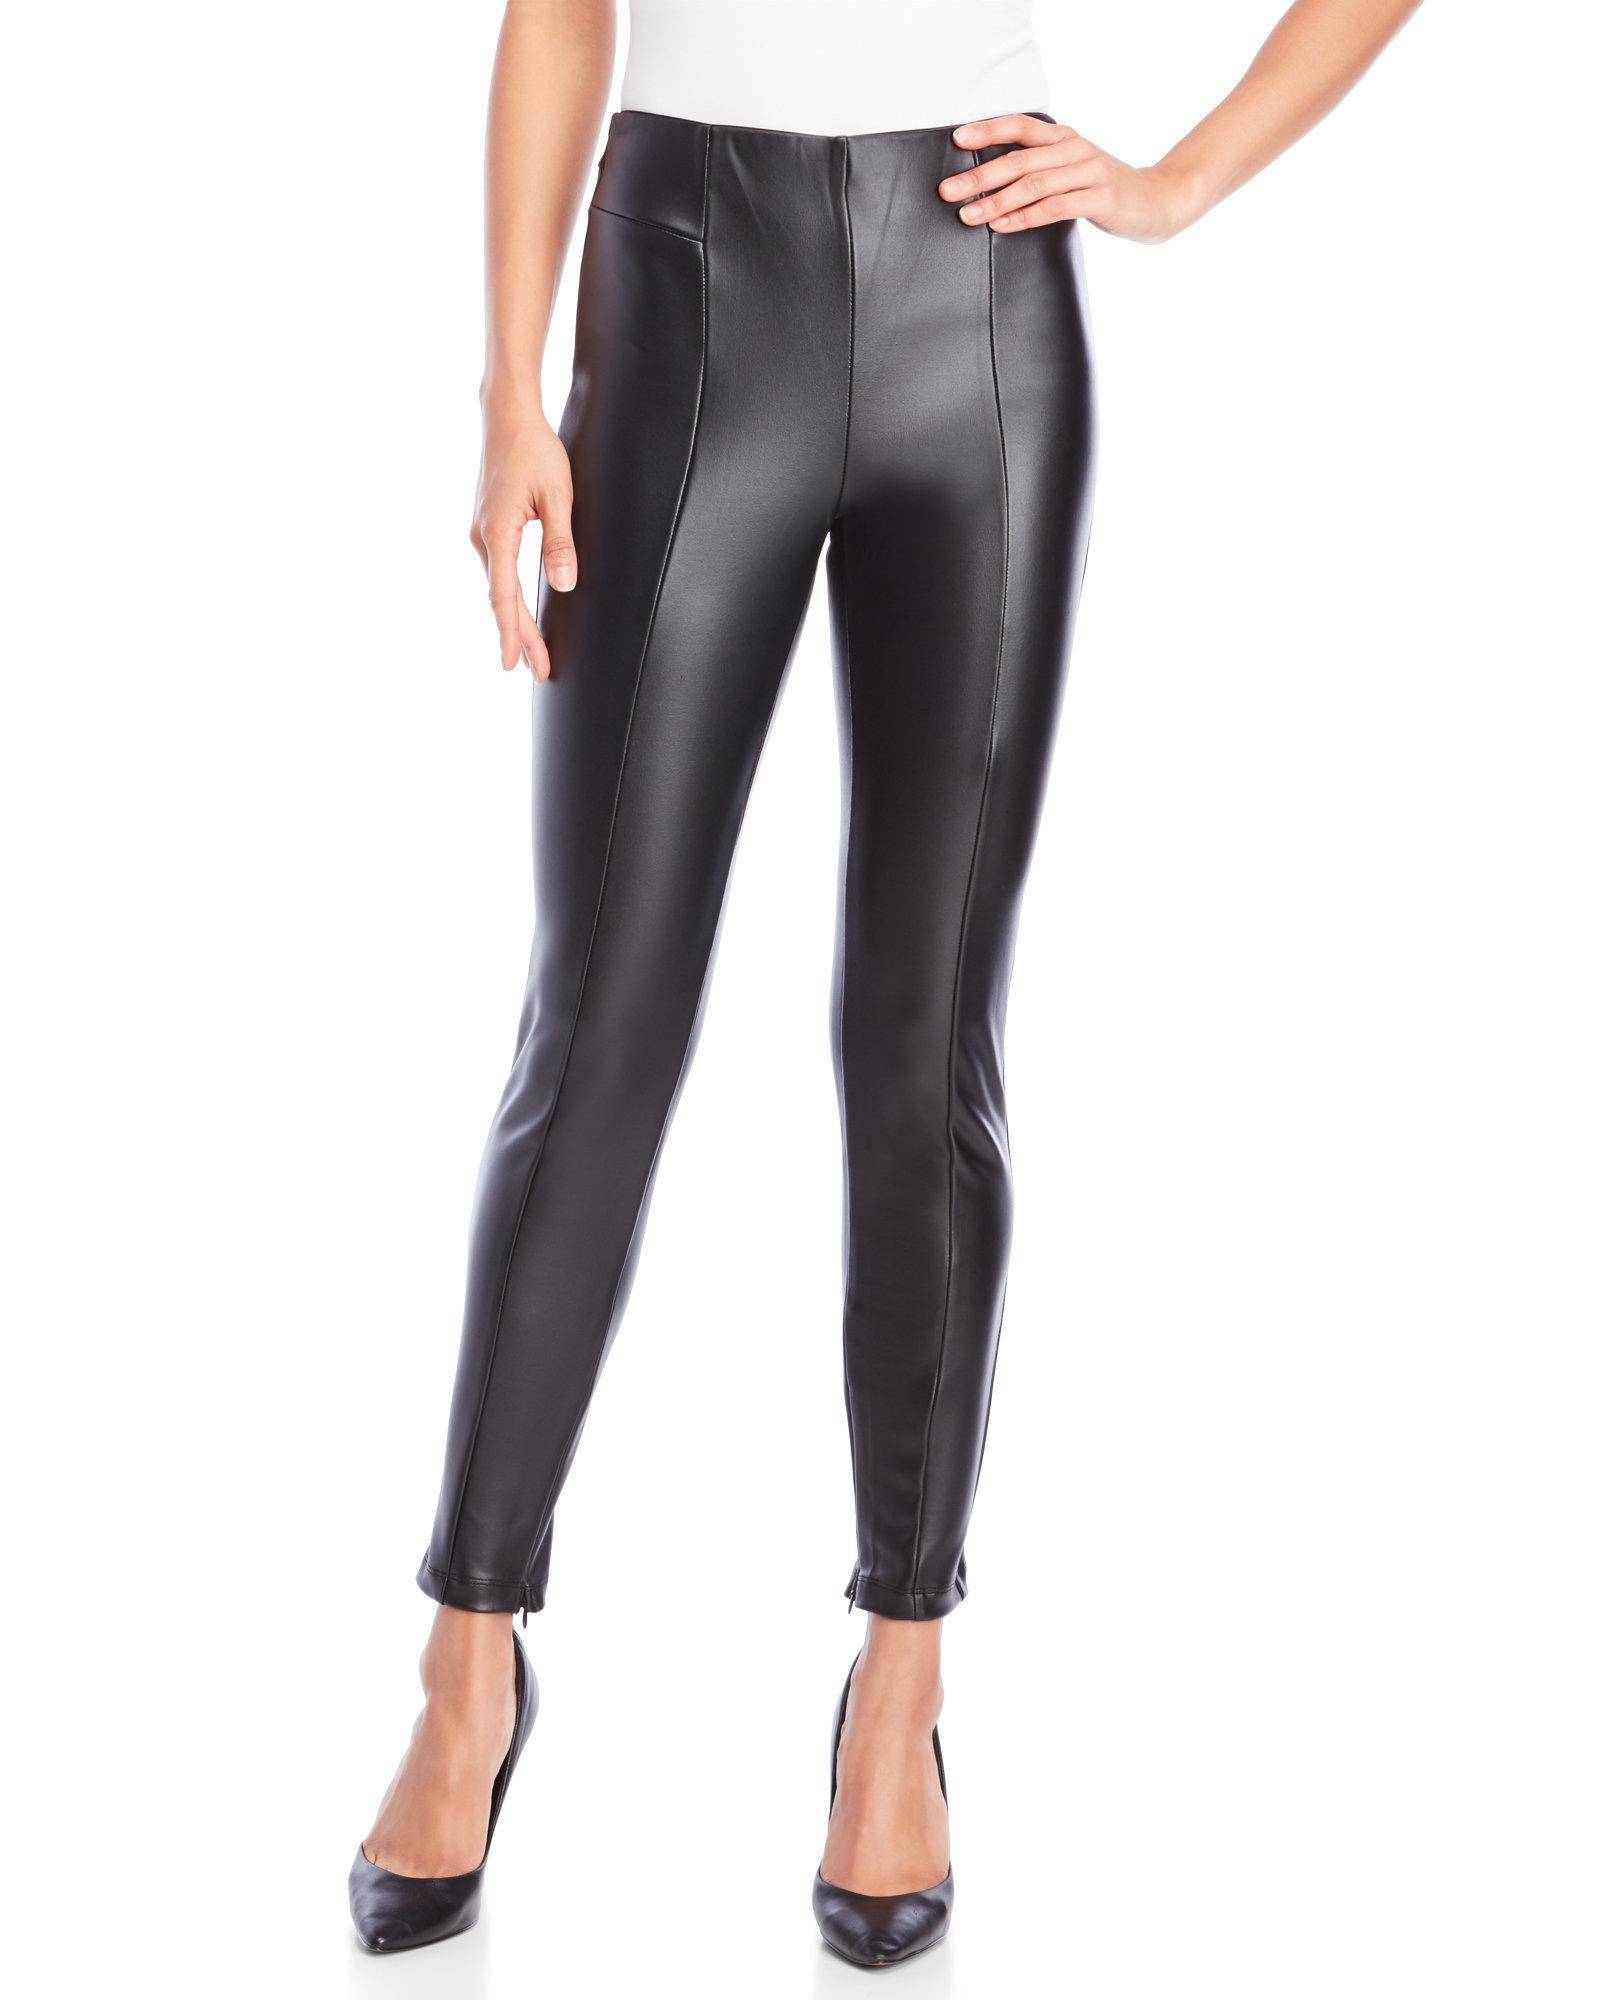 dfab7134d8ab49 Romeo and Juliet Couture Faux Leather Leggings in Black - Lyst